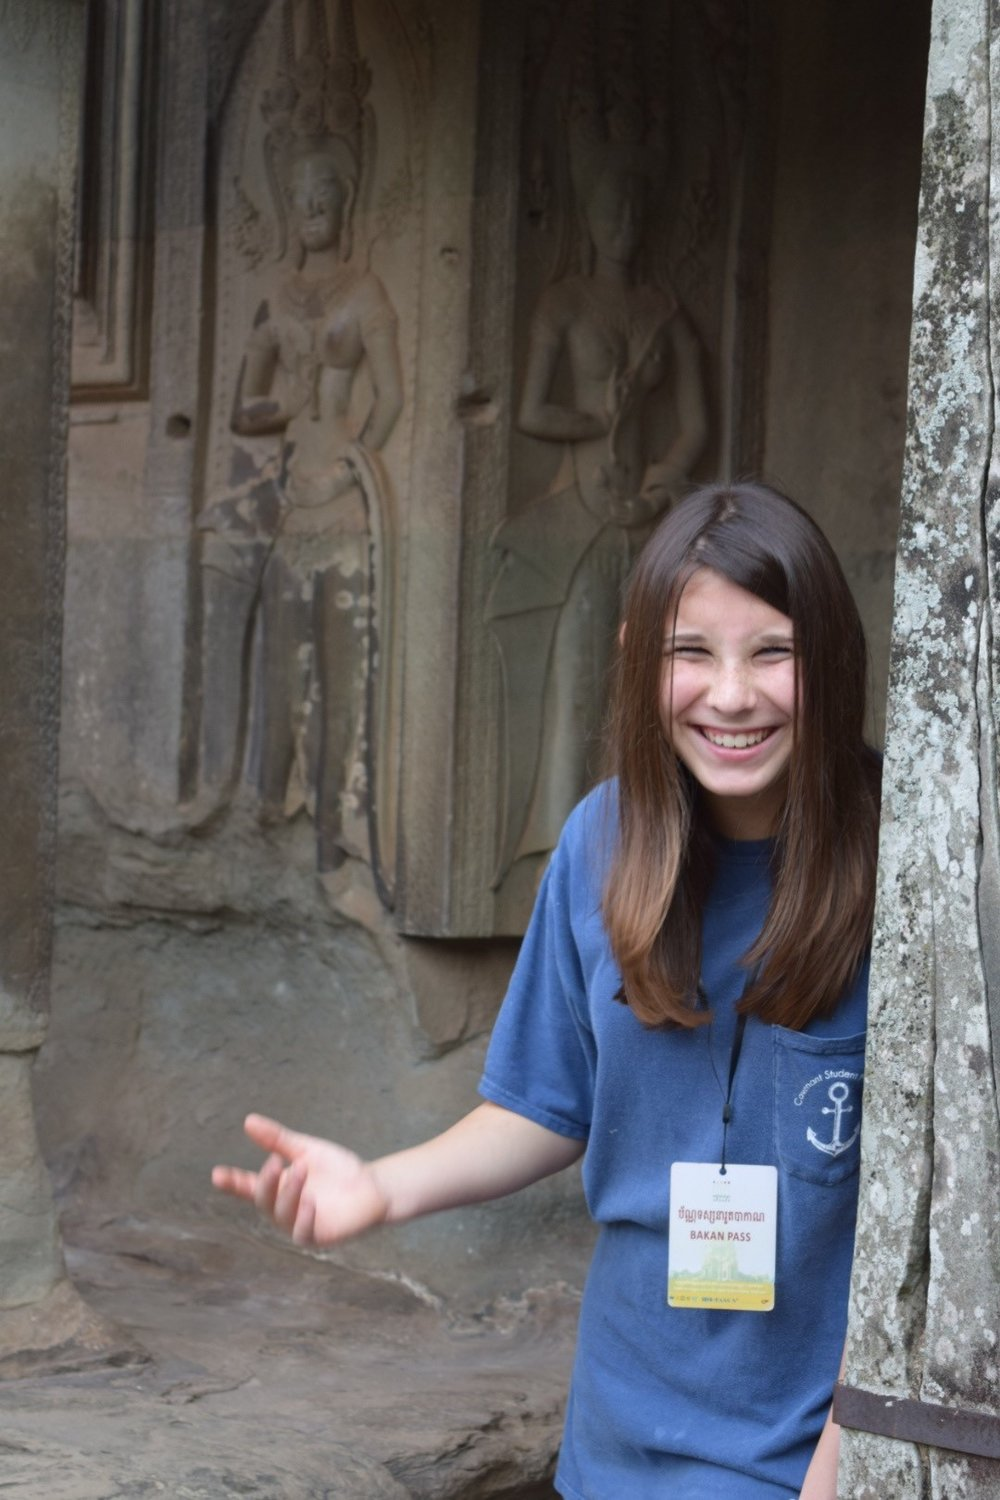 A teenager's perspective on Angkor Wat.